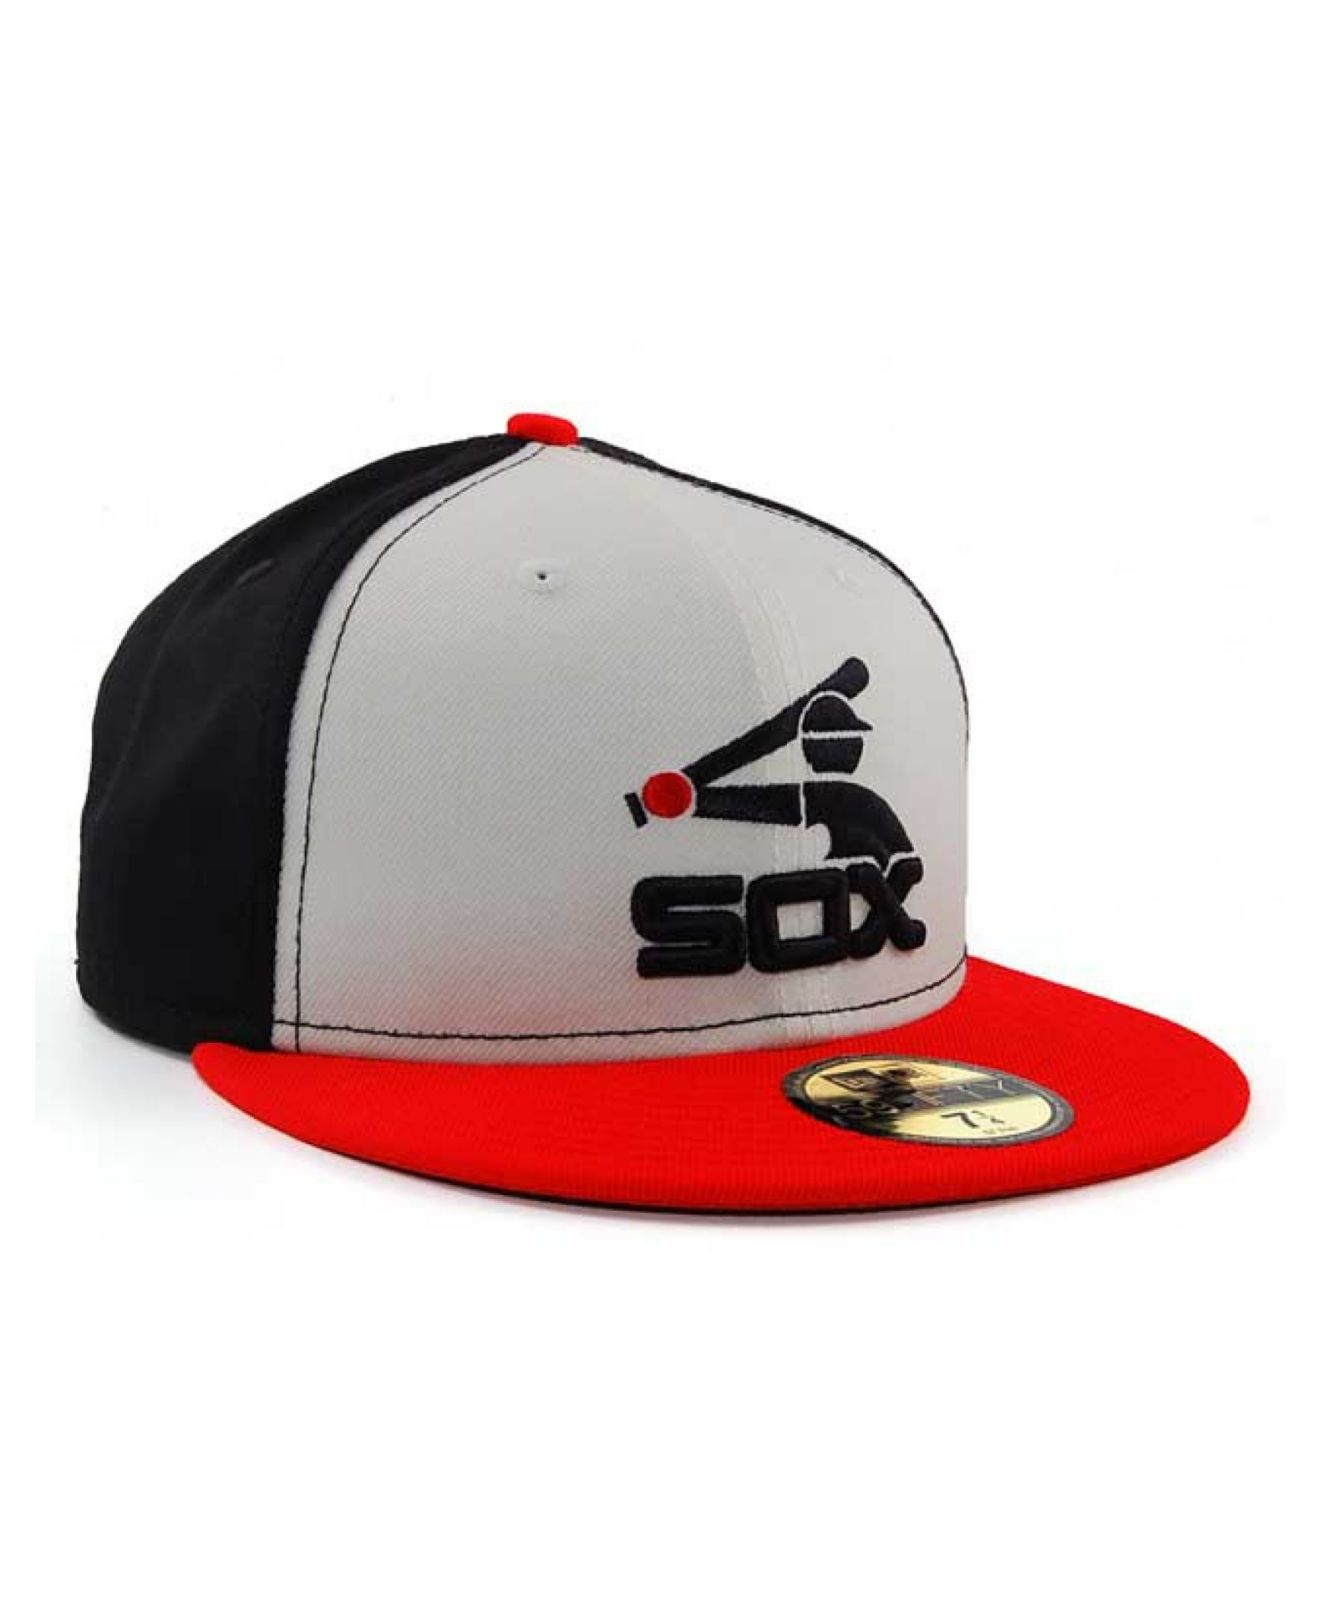 best authentic 11680 08e30 reduced lyst ktz chicago white sox cooperstown 59fifty cap in blue for men  b8ccb cb70a